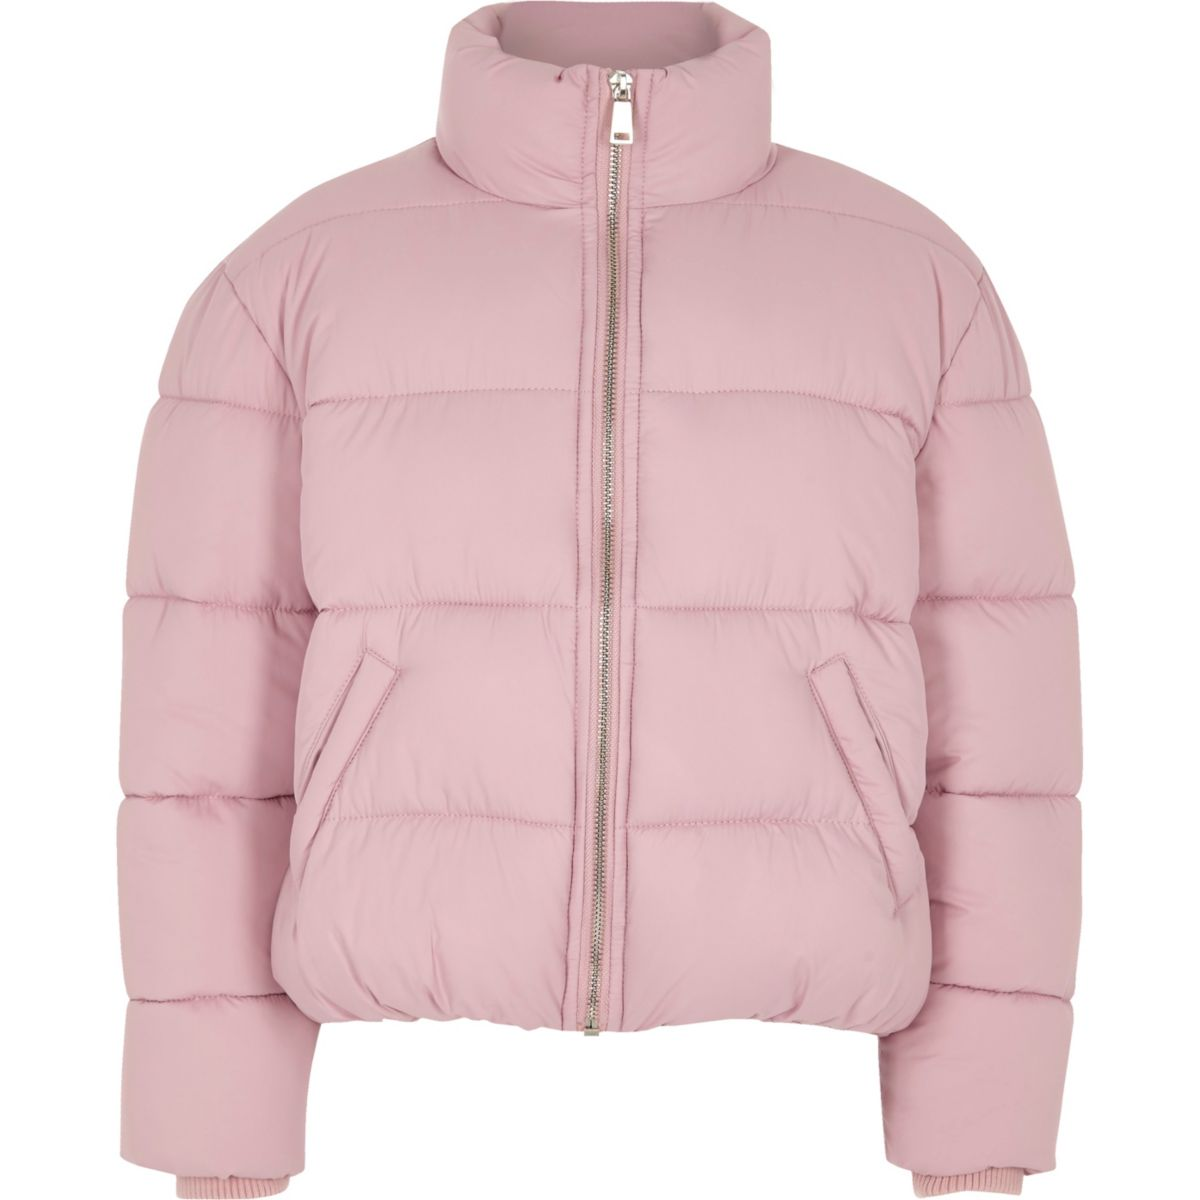 Girls light purple puffer jacket - Jackets - Coats & Jackets - girls